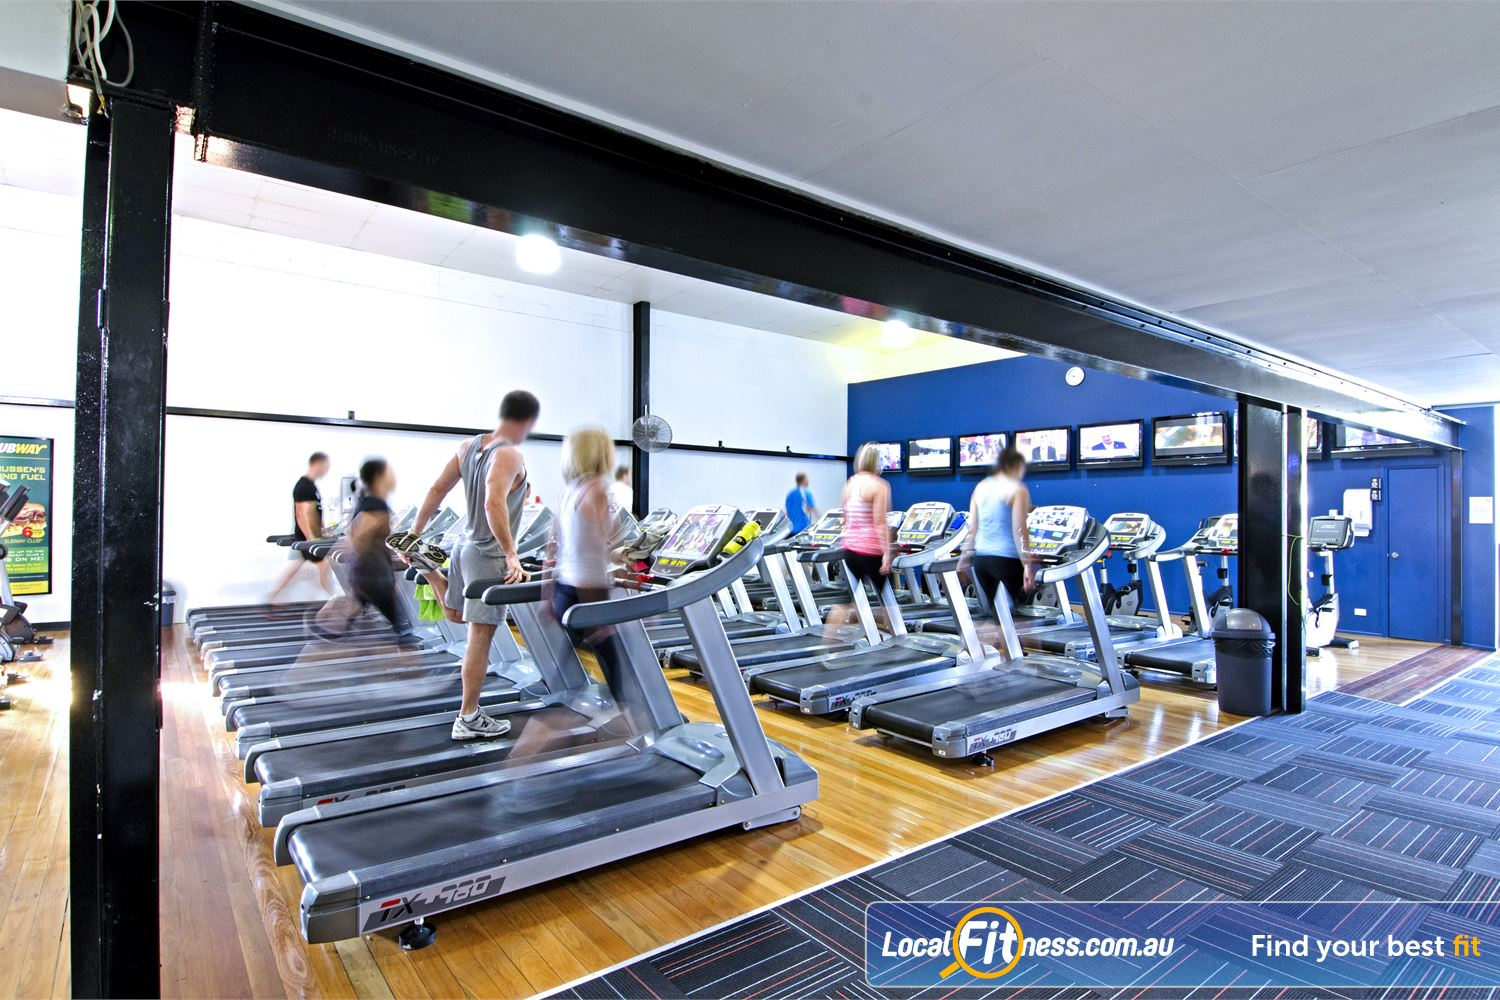 Goodlife Health Clubs Graceville Tune into your favourite shows on your personalised LCD screen or cardio theatre.